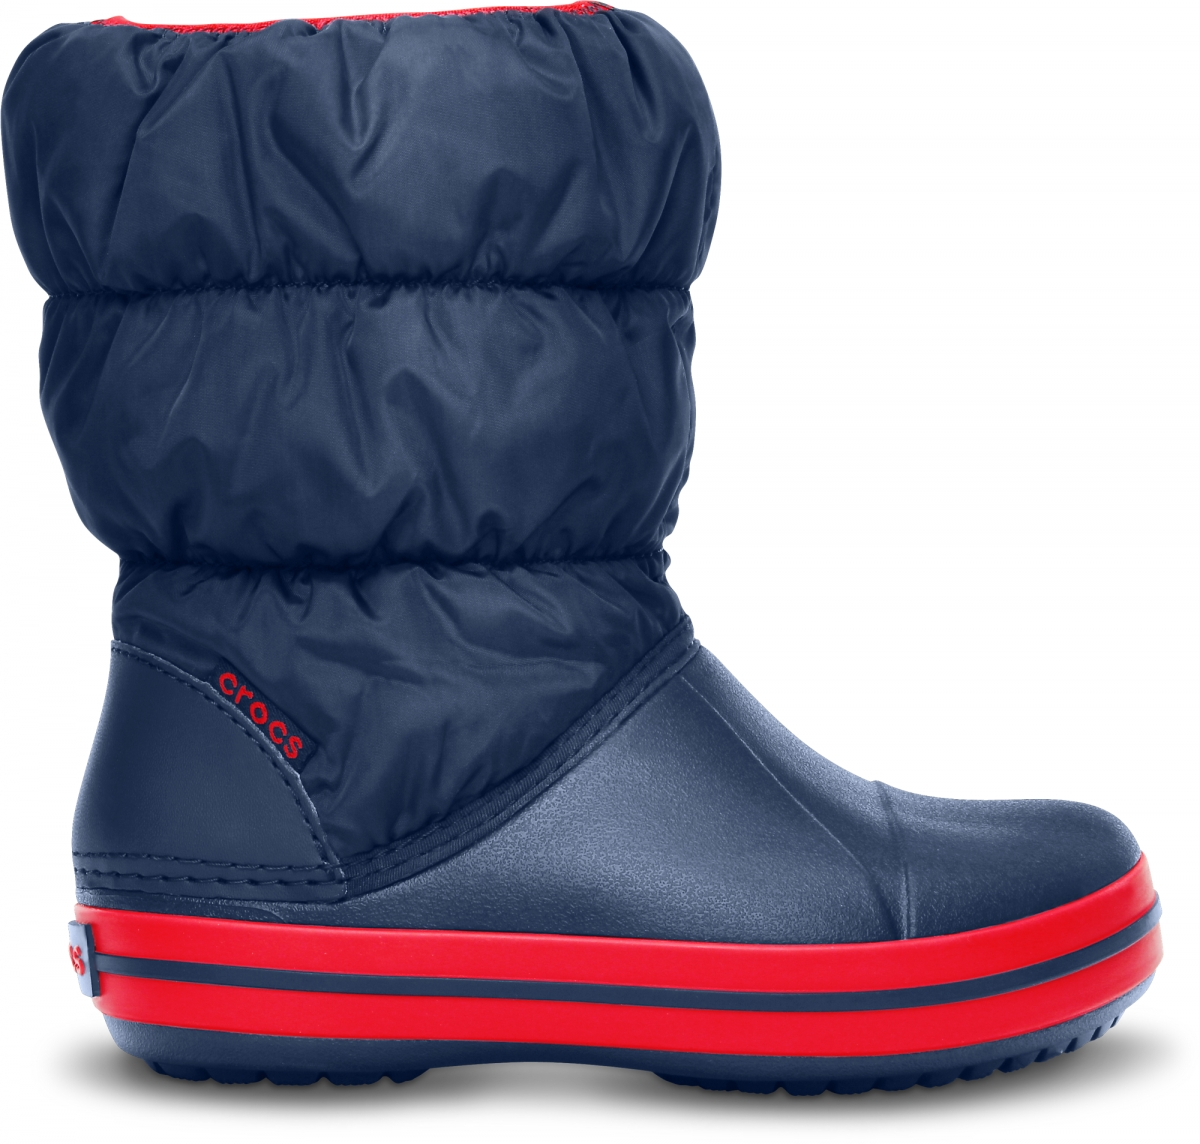 Crocs Winter Puff Boot Kids - Navy/Red, C11 (28-29)